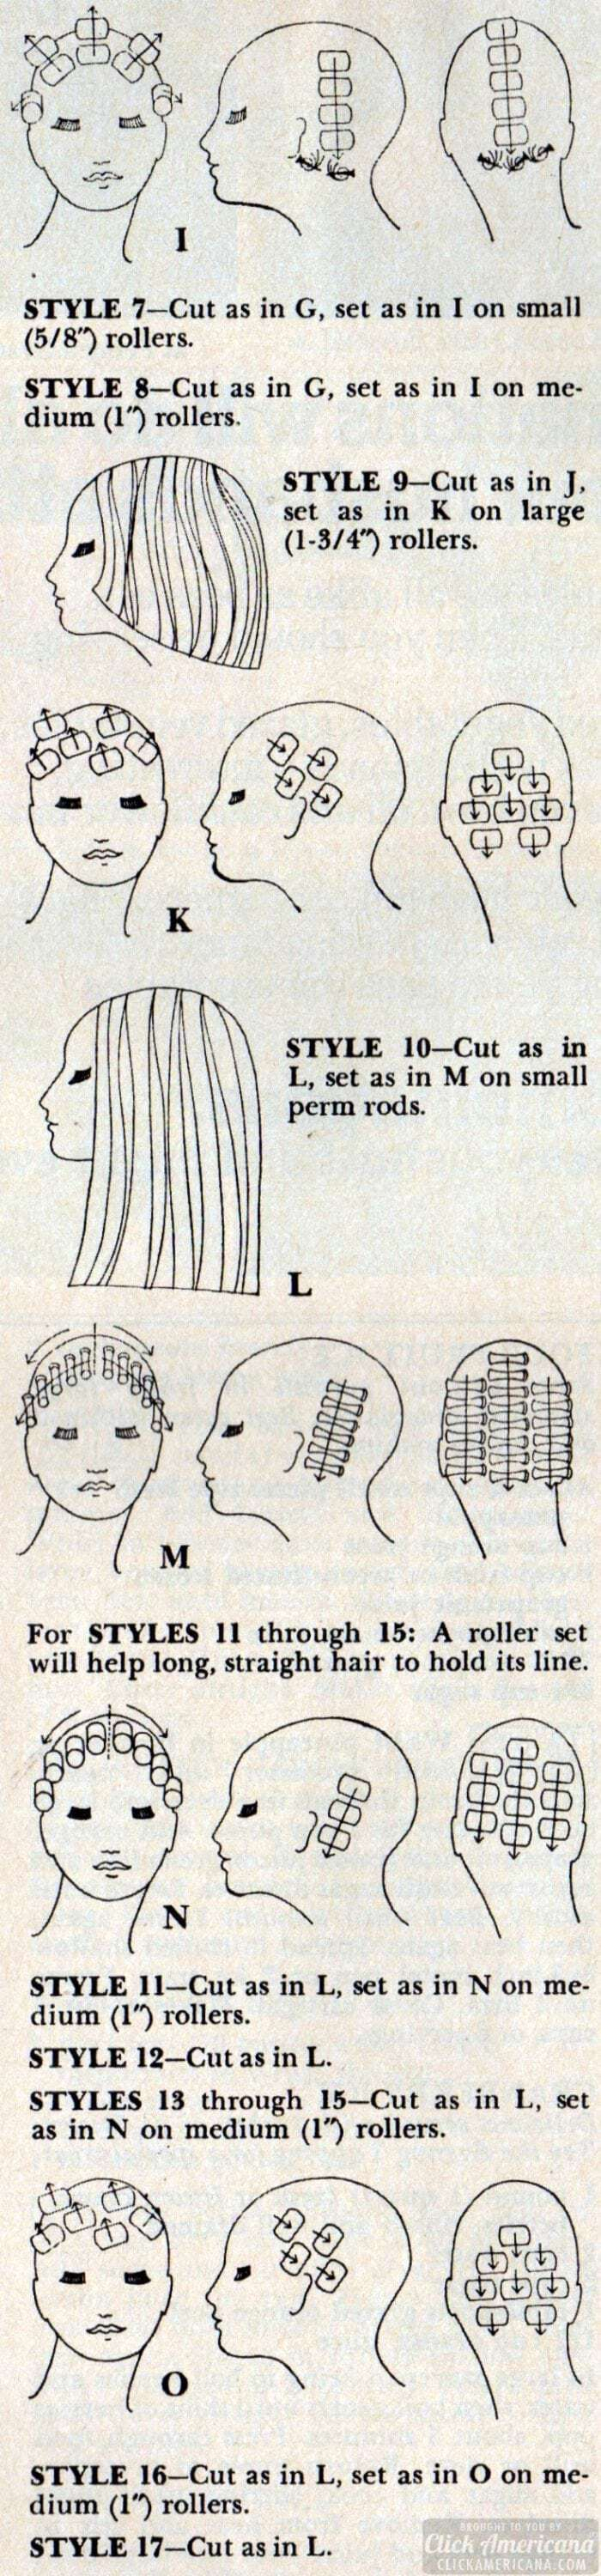 Step-by-step directions: How to make these '77 hairstyles